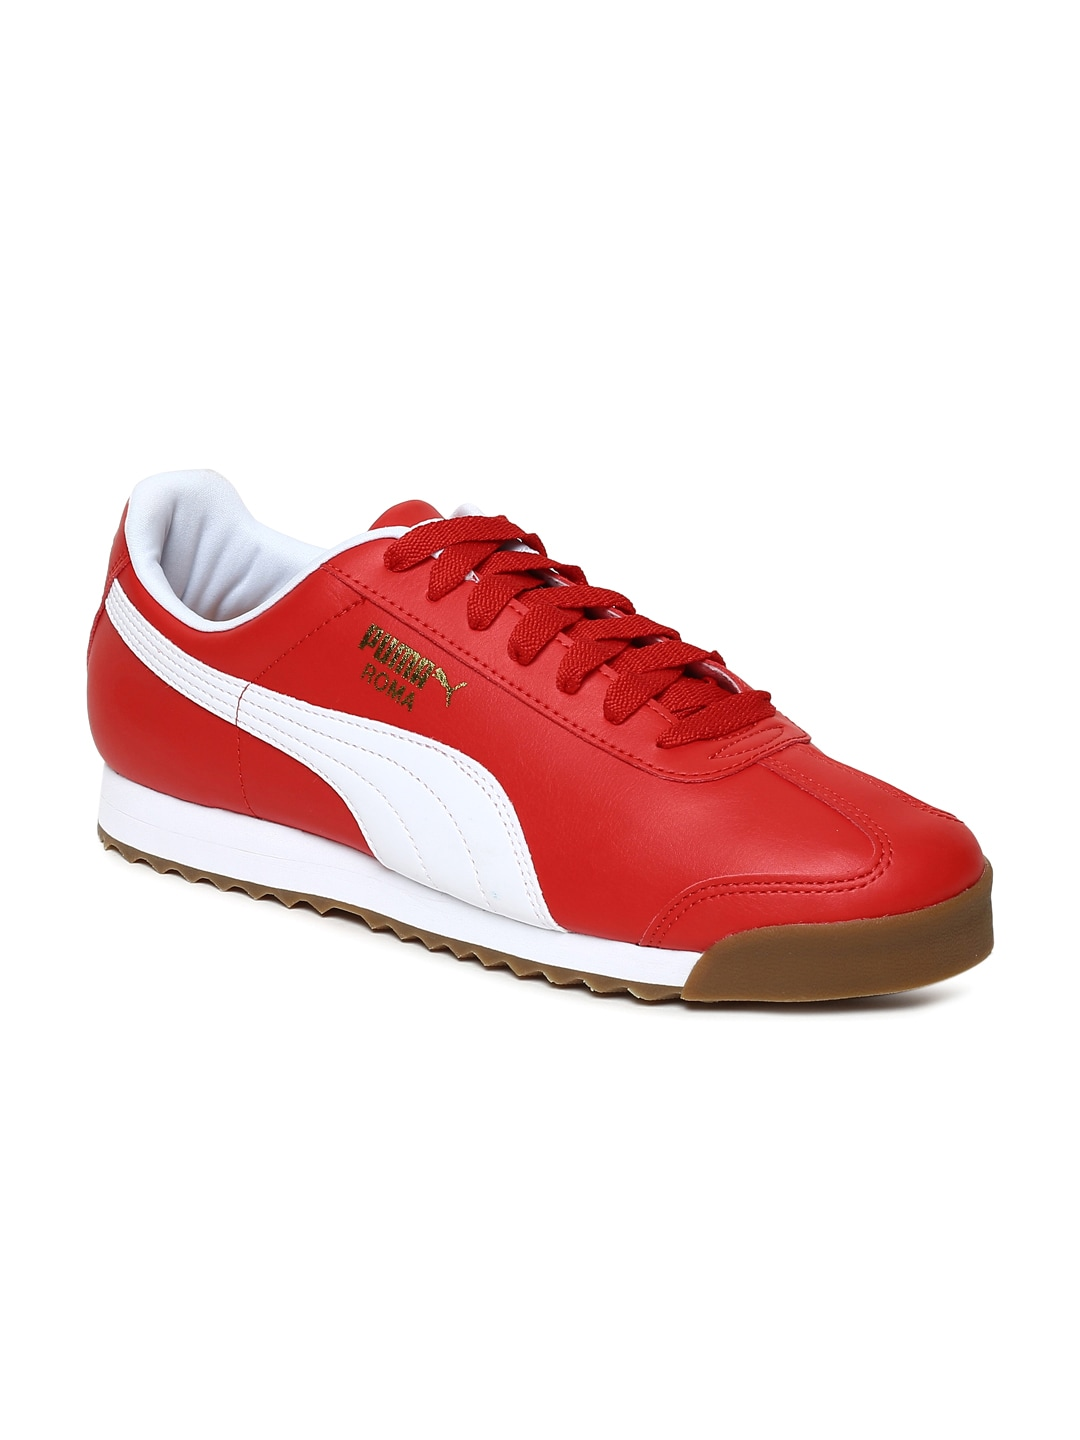 Puma Men White Leather Shoes - Buy Puma Men White Leather Shoes online in  India 590dcf4e1